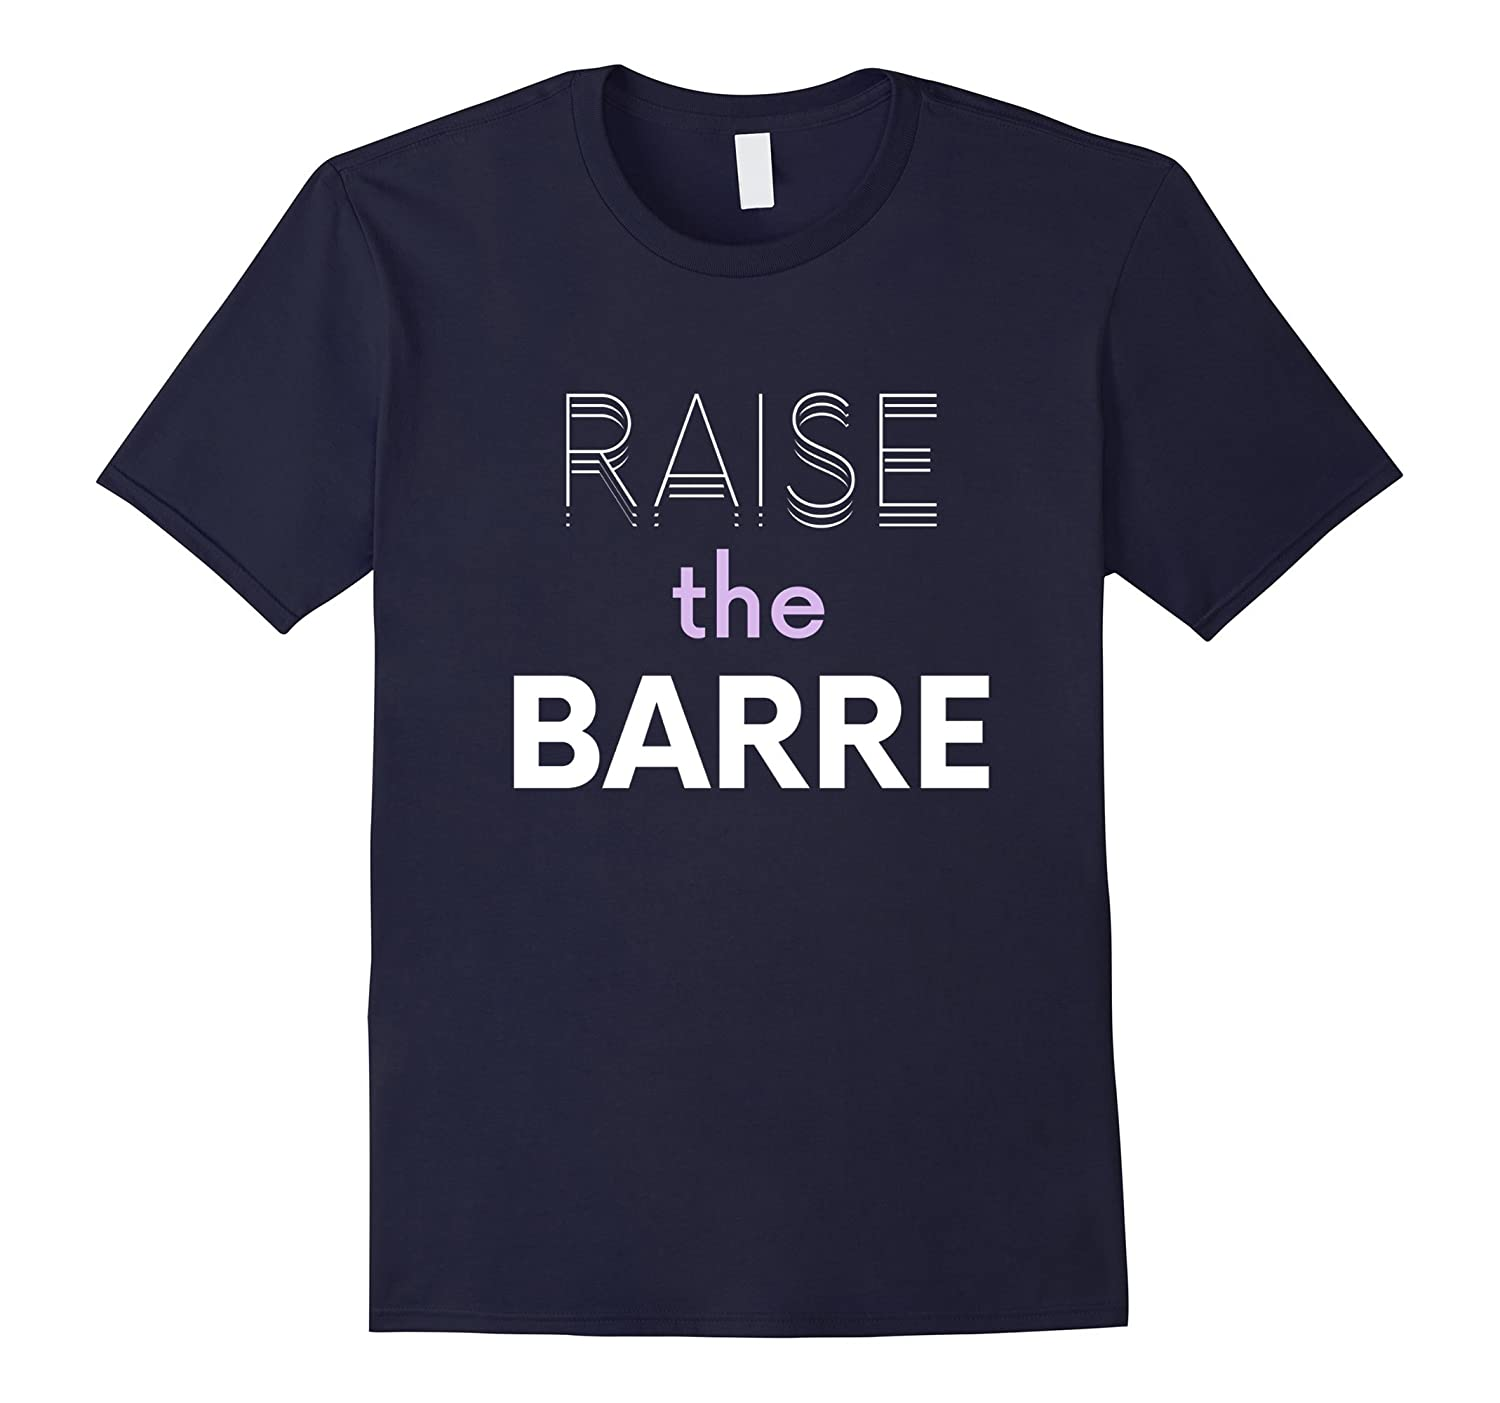 Raise the Barre Ballet Dance Workout T-Shirt - Relaxed Fit-TD